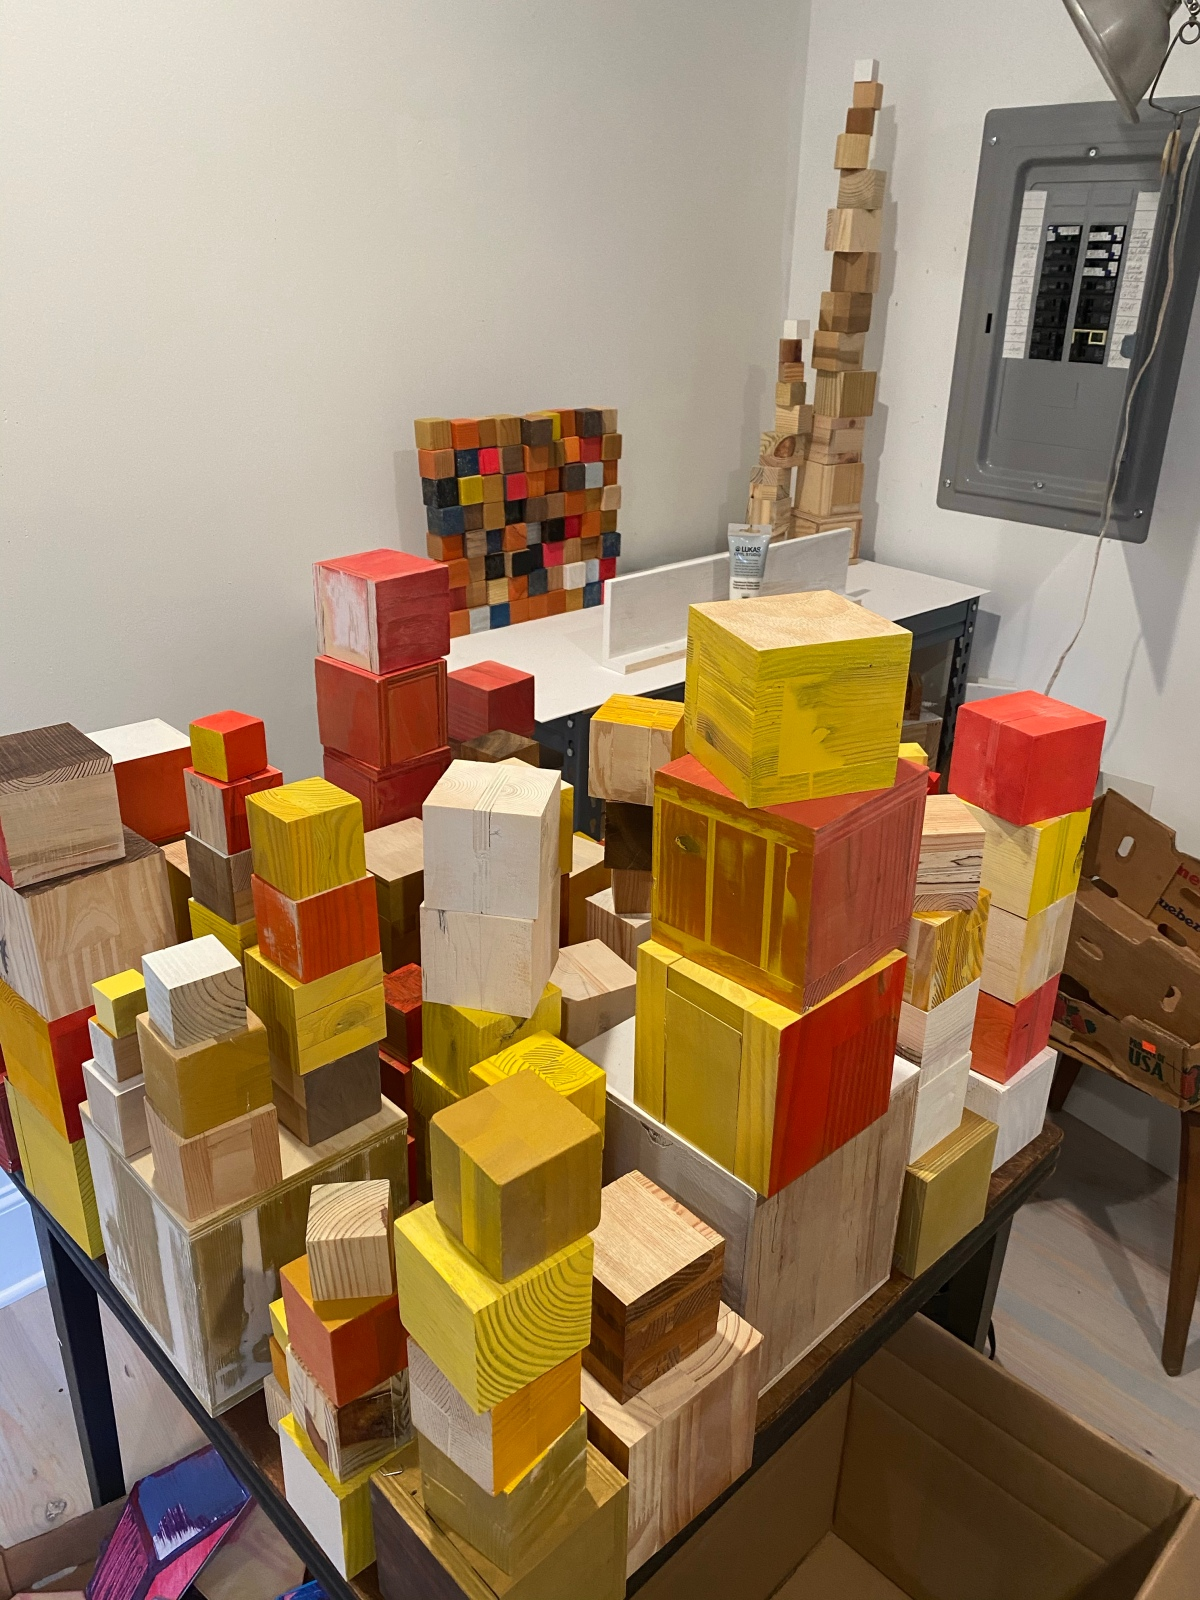 Moving cubes to thewall